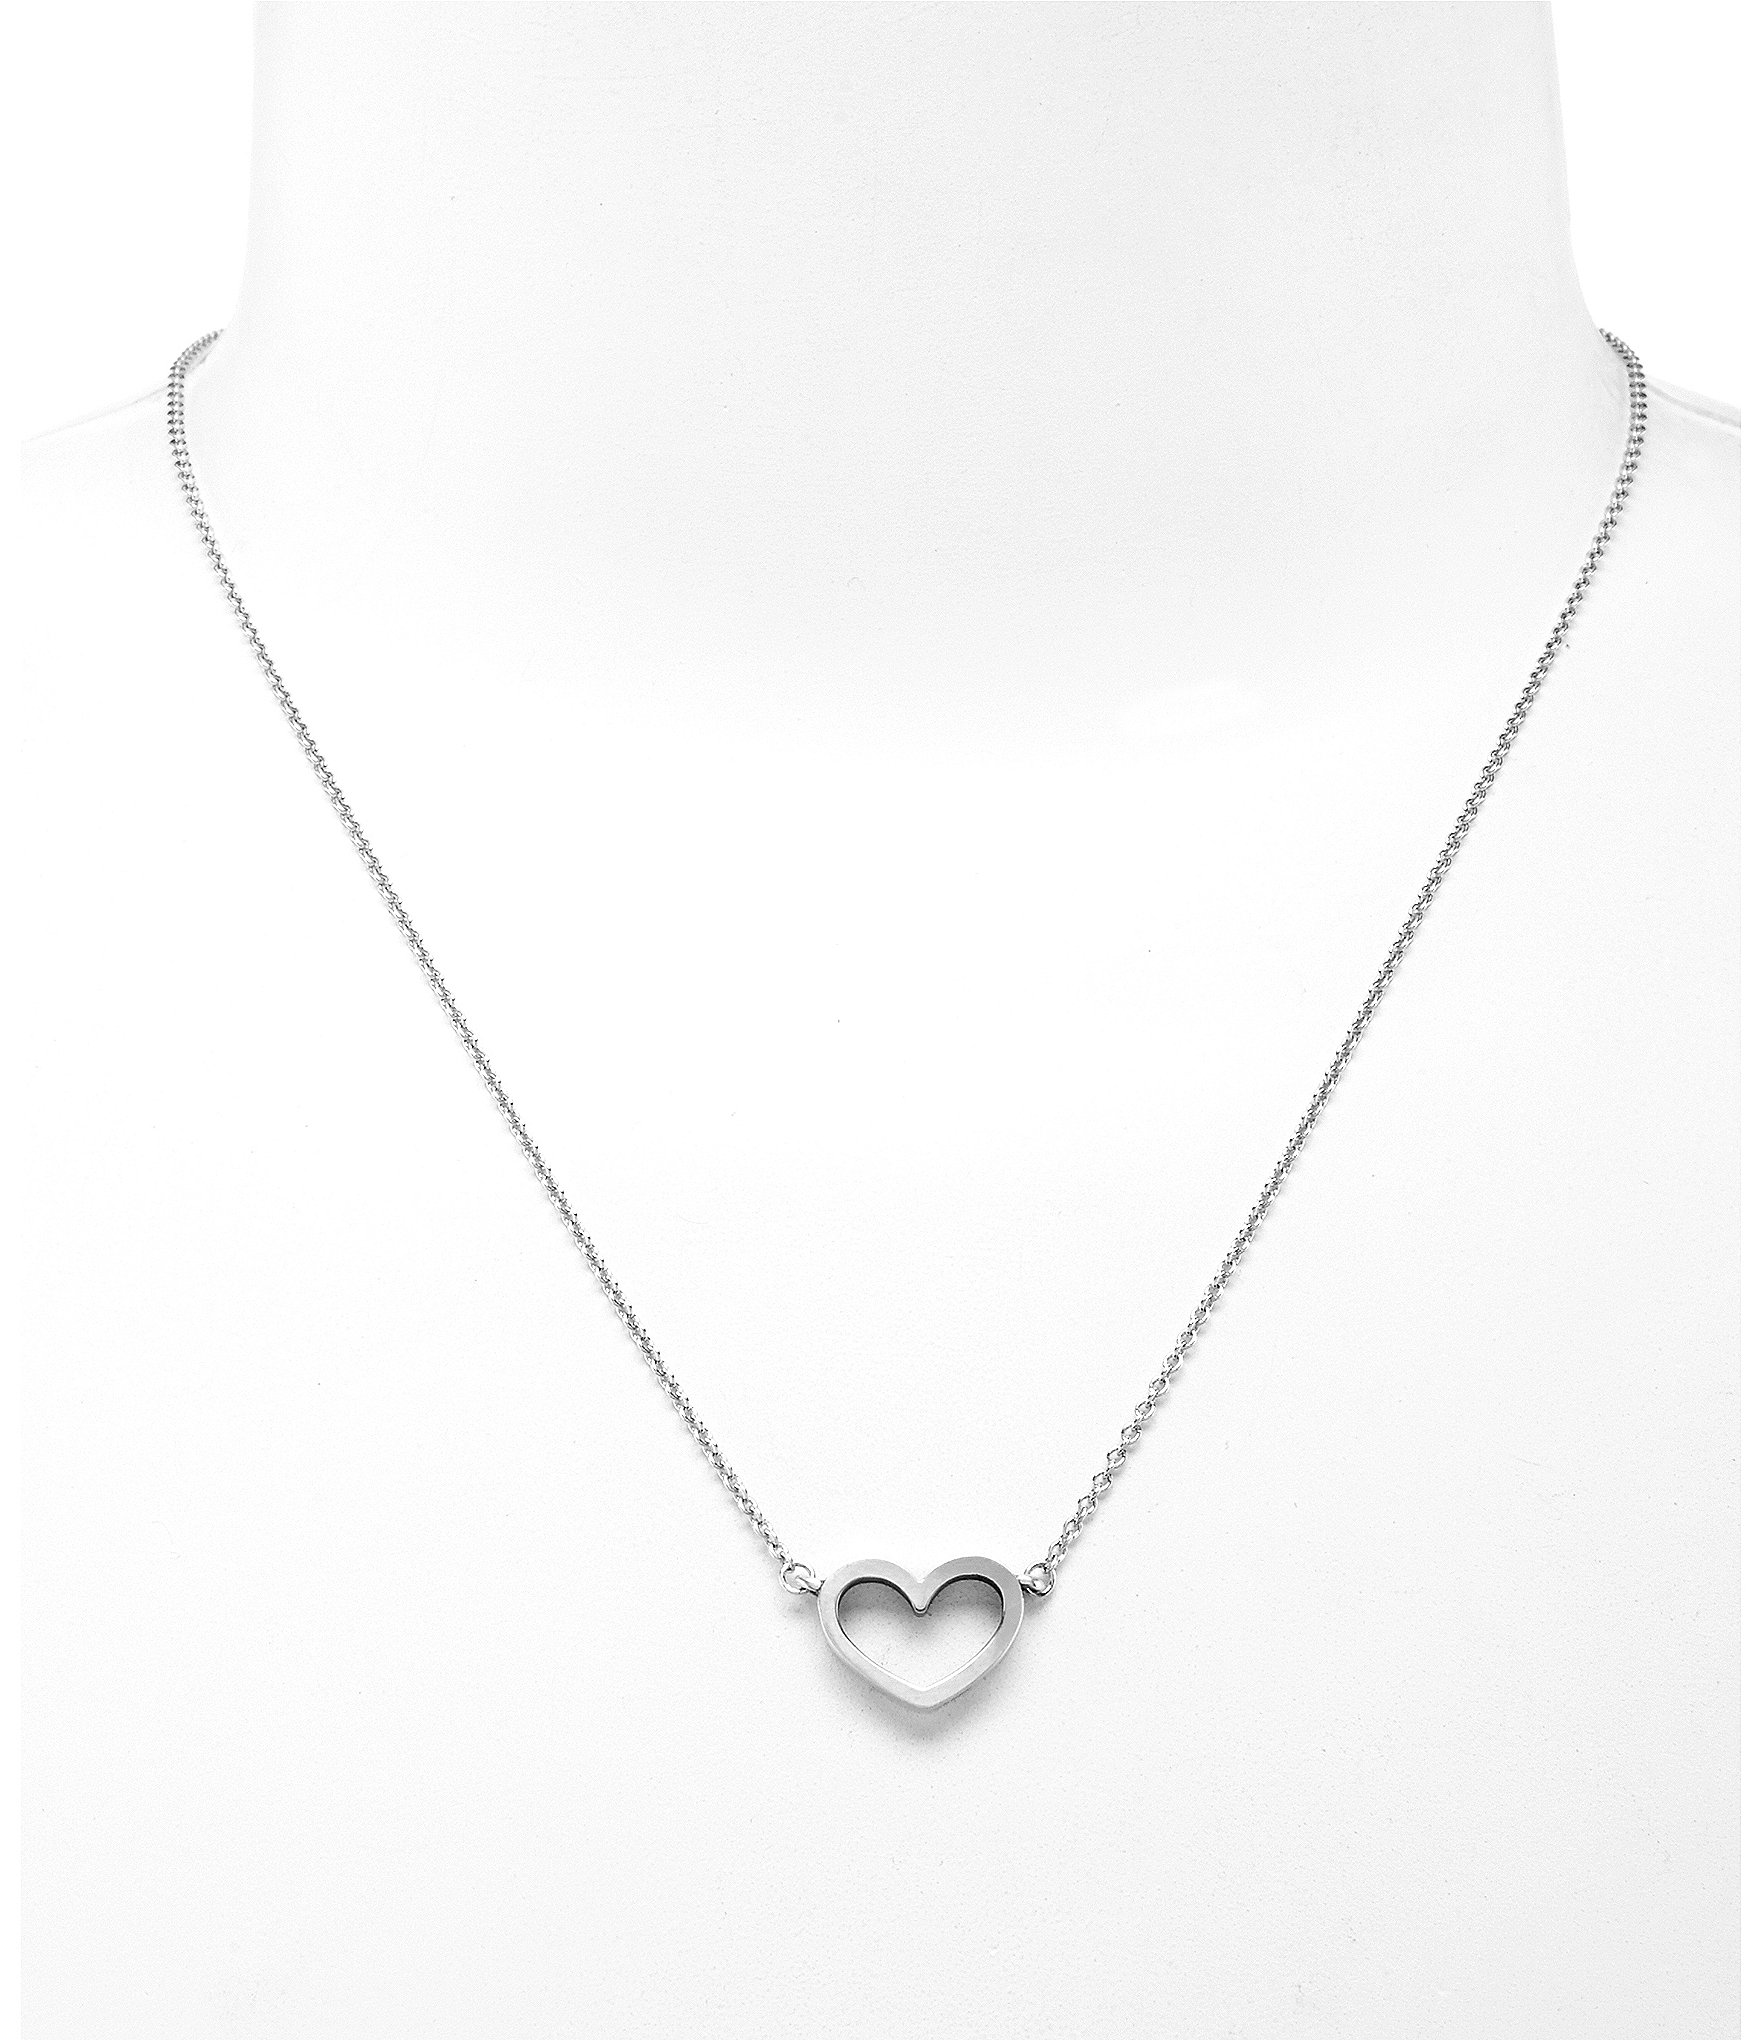 medallion mini products borboleta heart plain necklace with